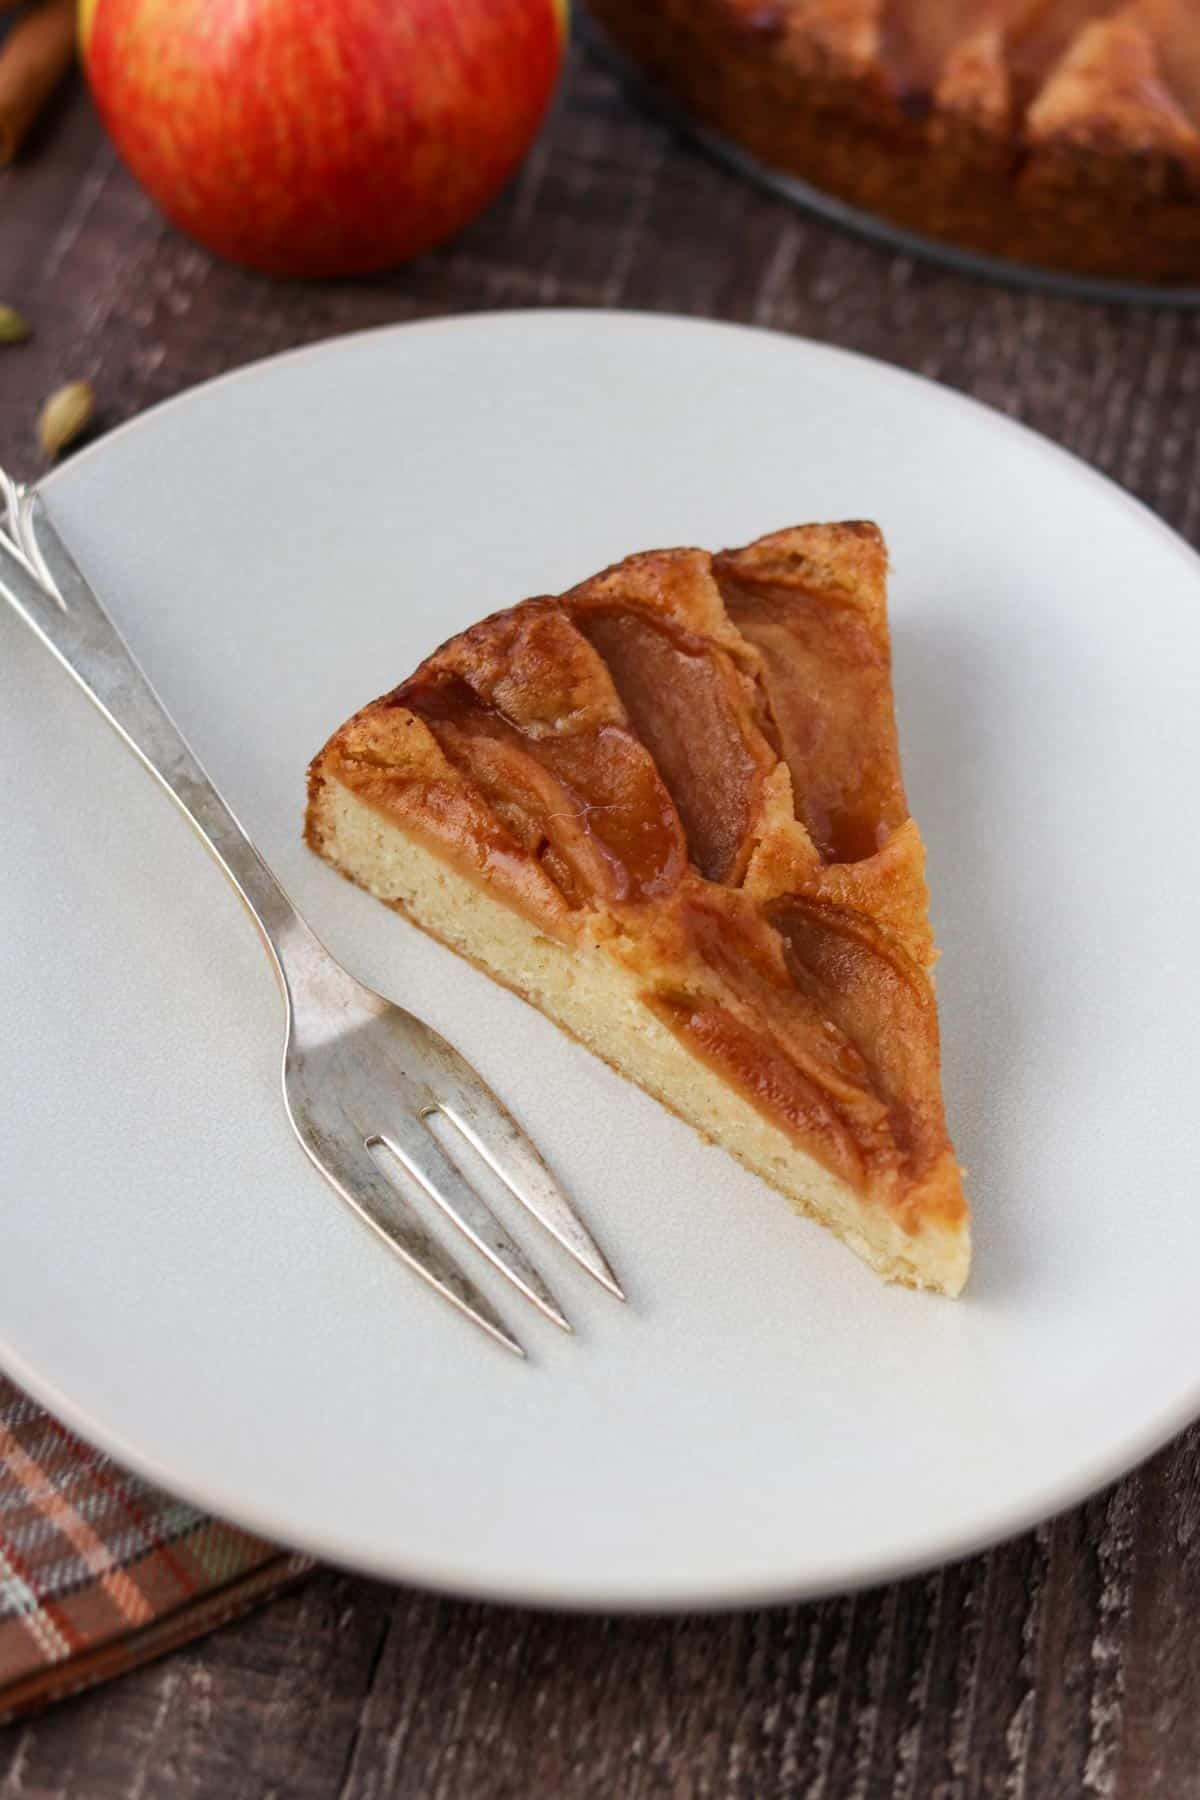 Slice of Swedish Apple Cake on a plate next to a fork.